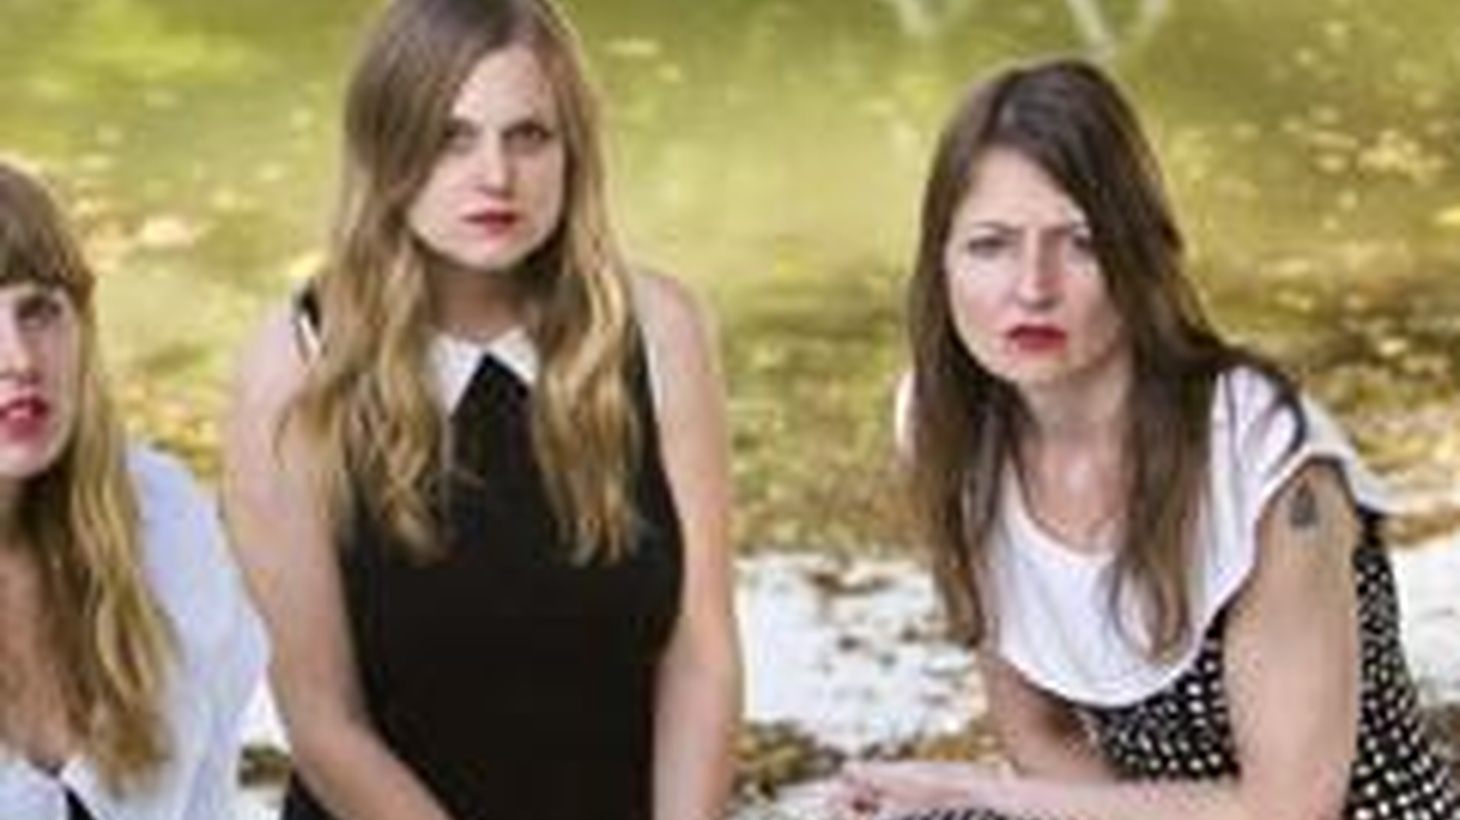 Los Angeles based trio, The Chapin Sisters, share their haunting harmonies as they perform on Morning Becomes Eclectic at 11:15am.